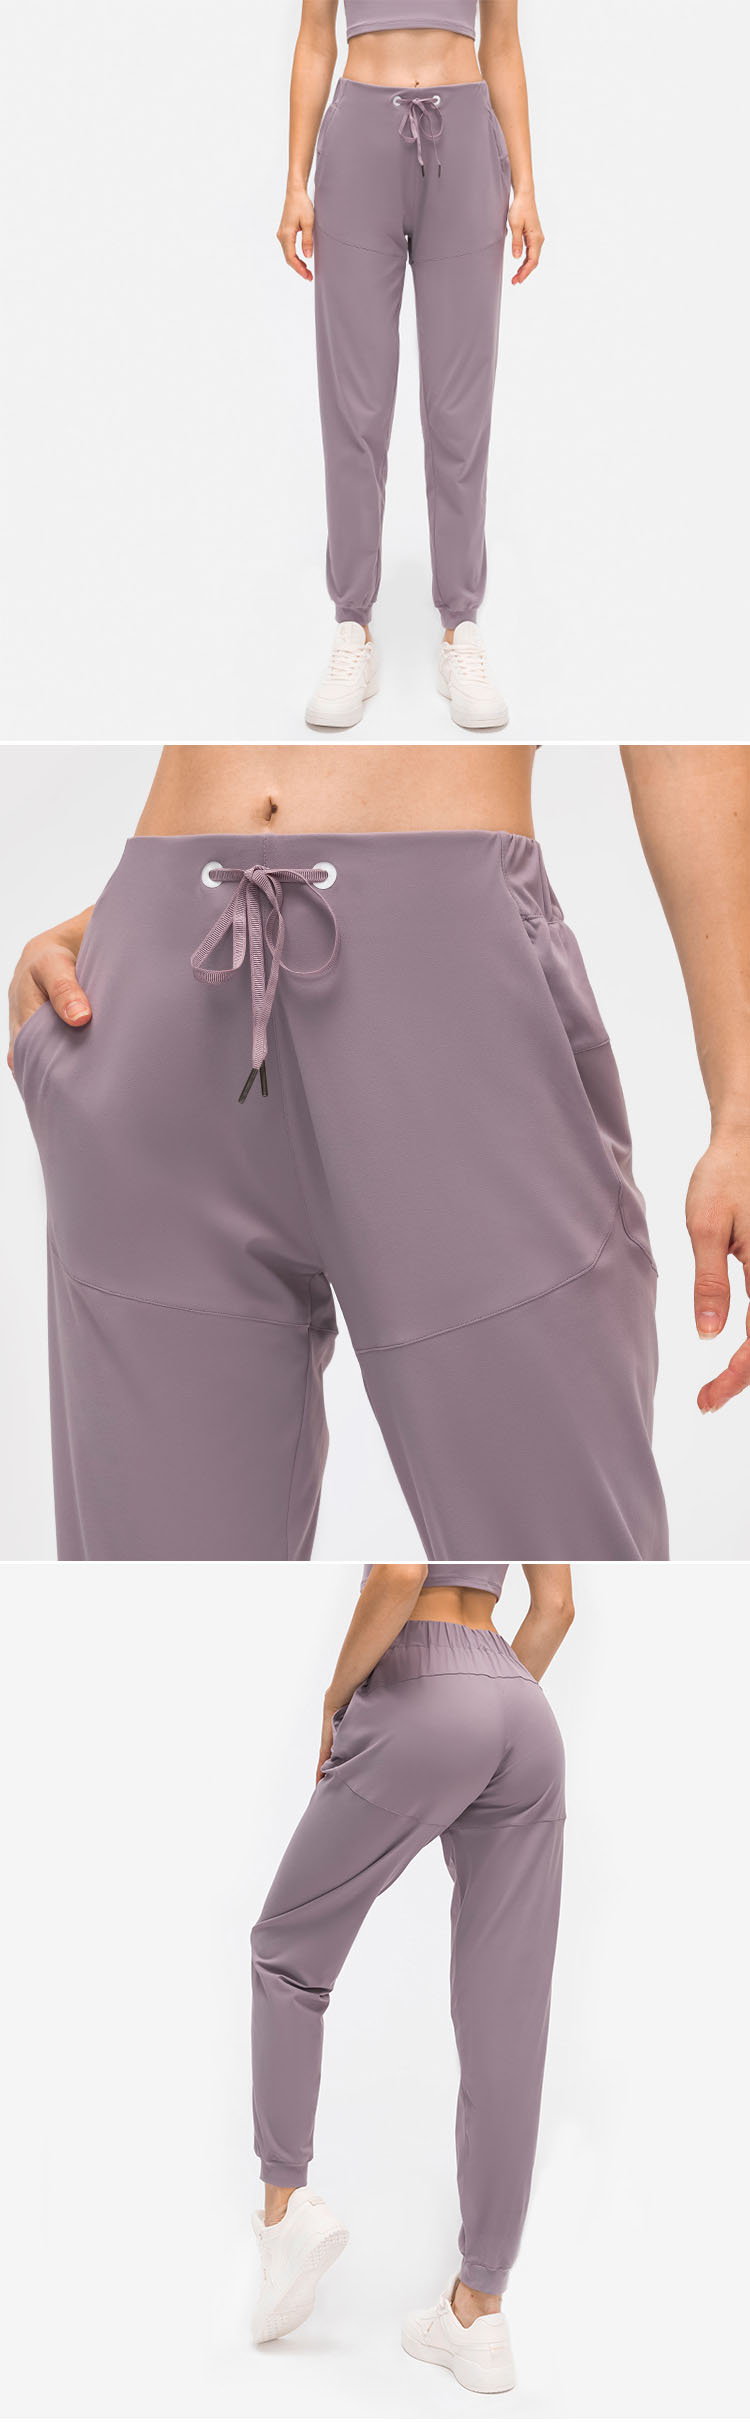 One-piece tailoring technology, showing no embarrassment line technology.